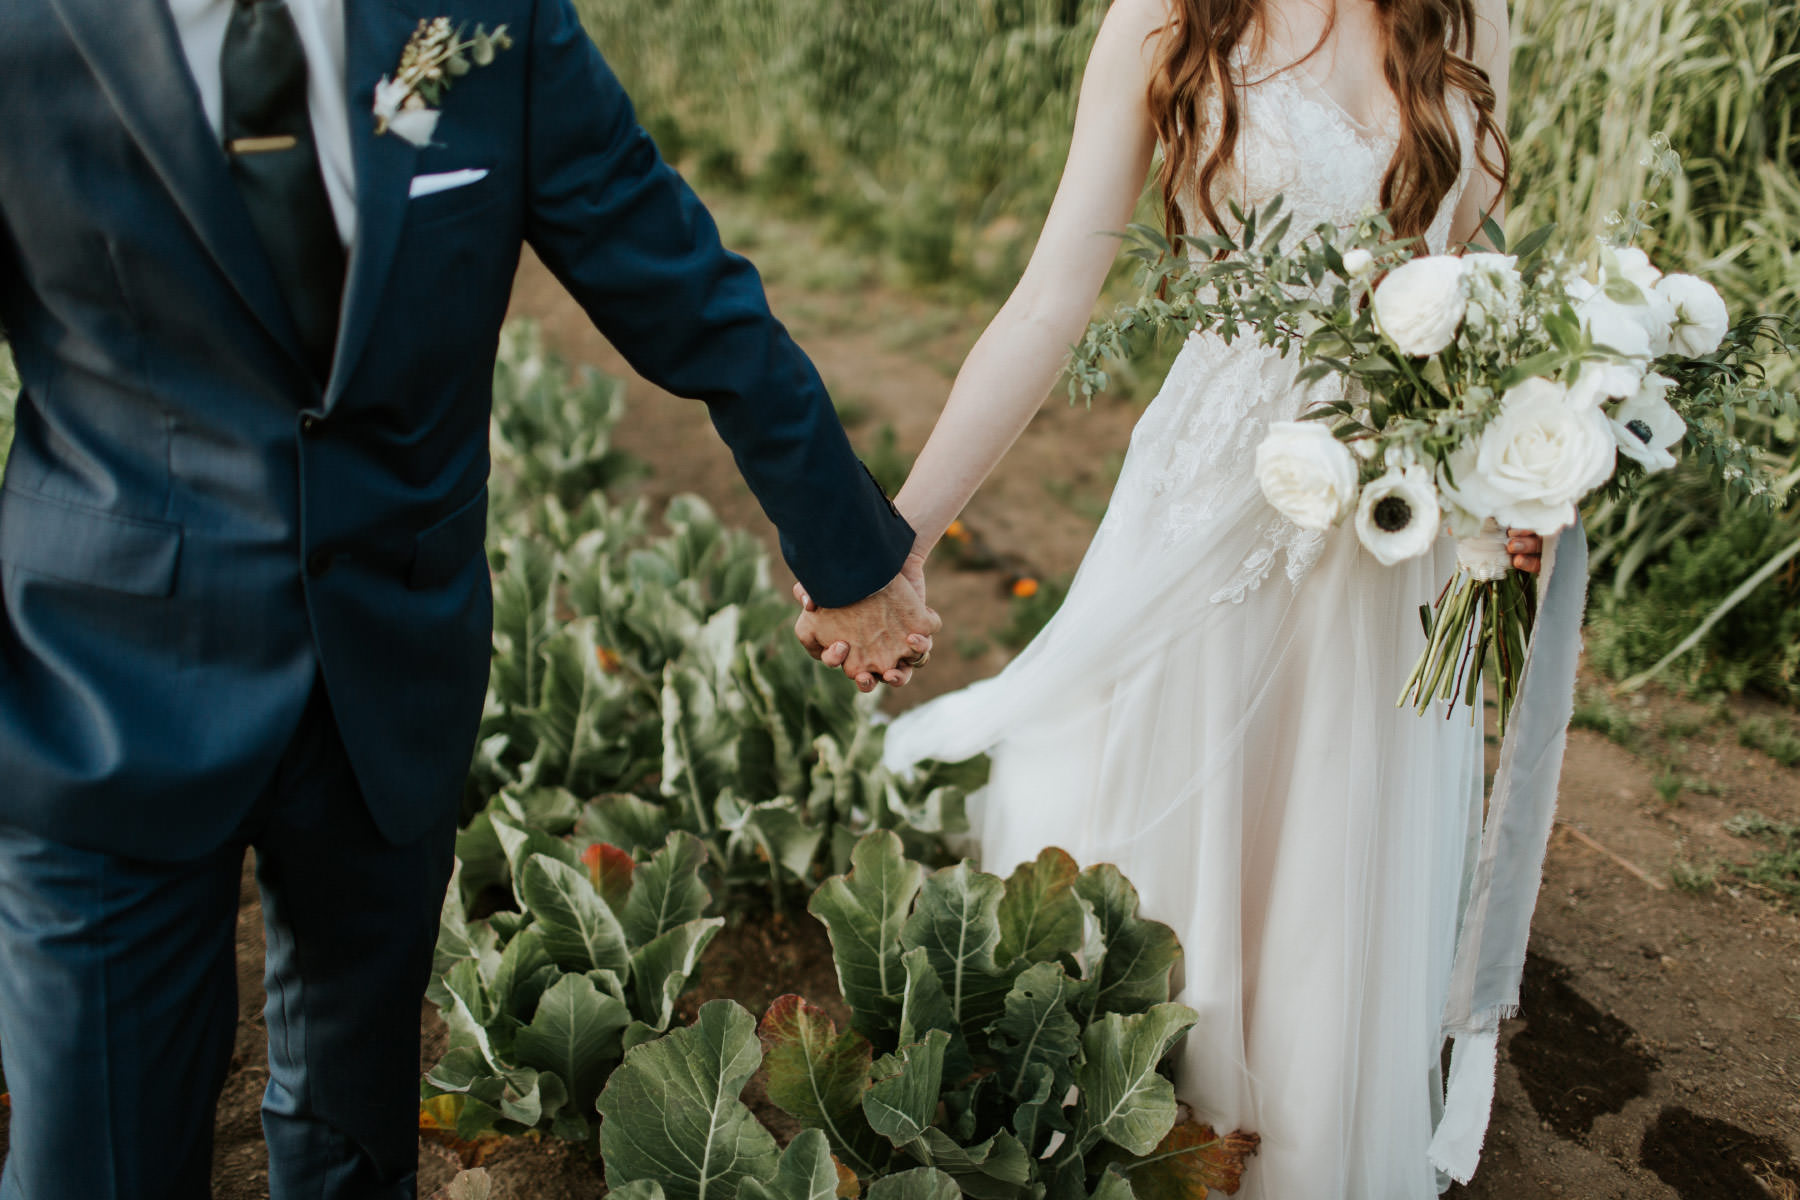 Bride and groom holding hands in organic garden